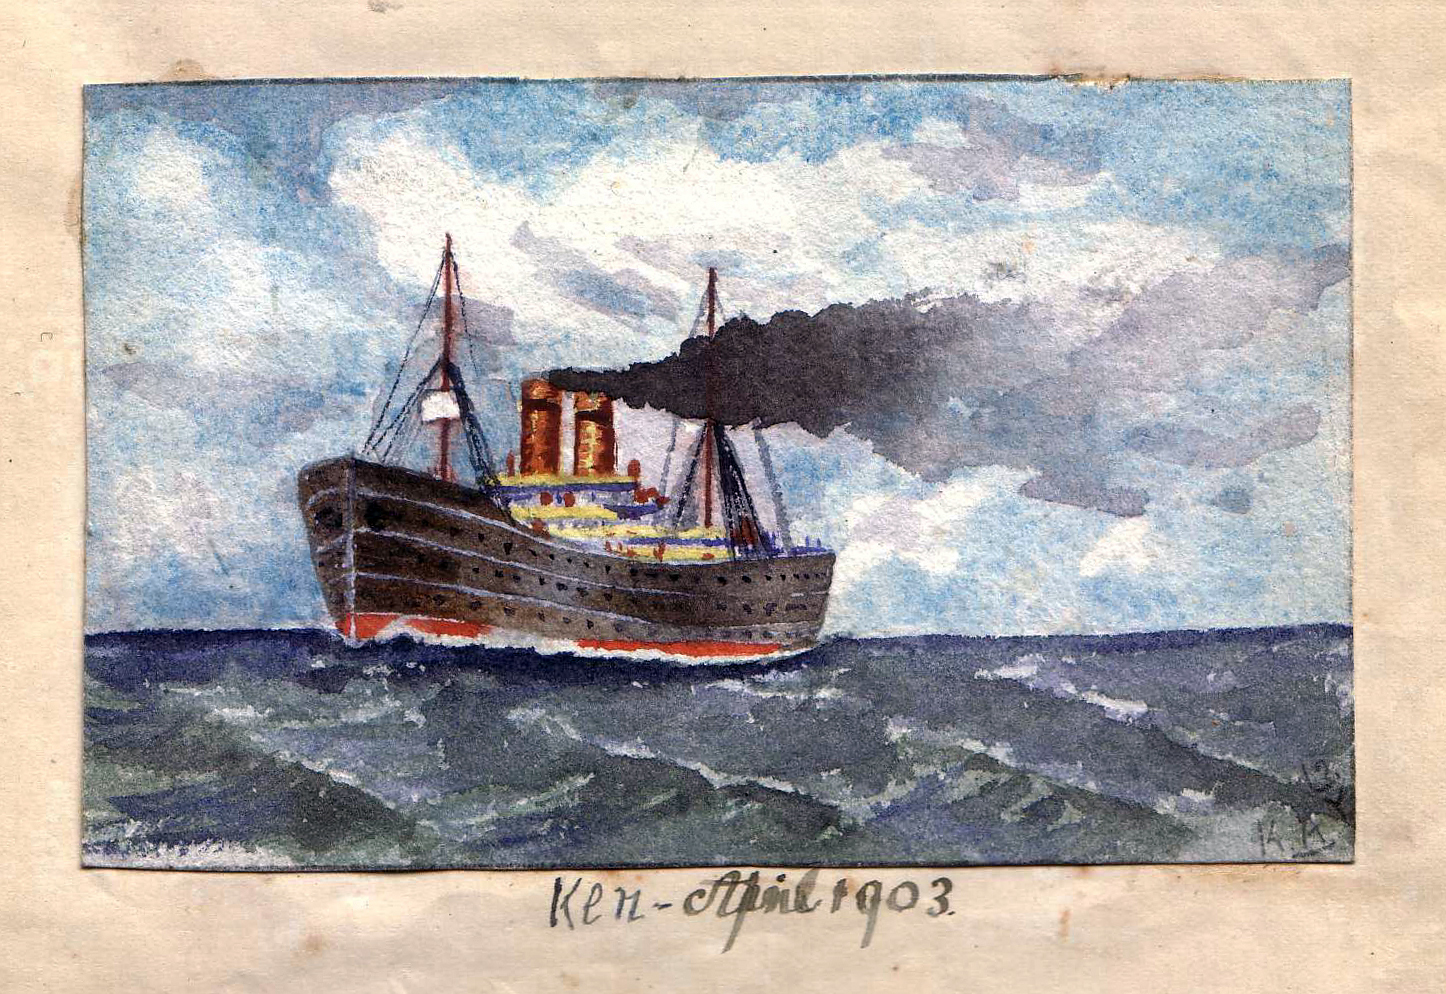 Steamer in the channel dated 1903